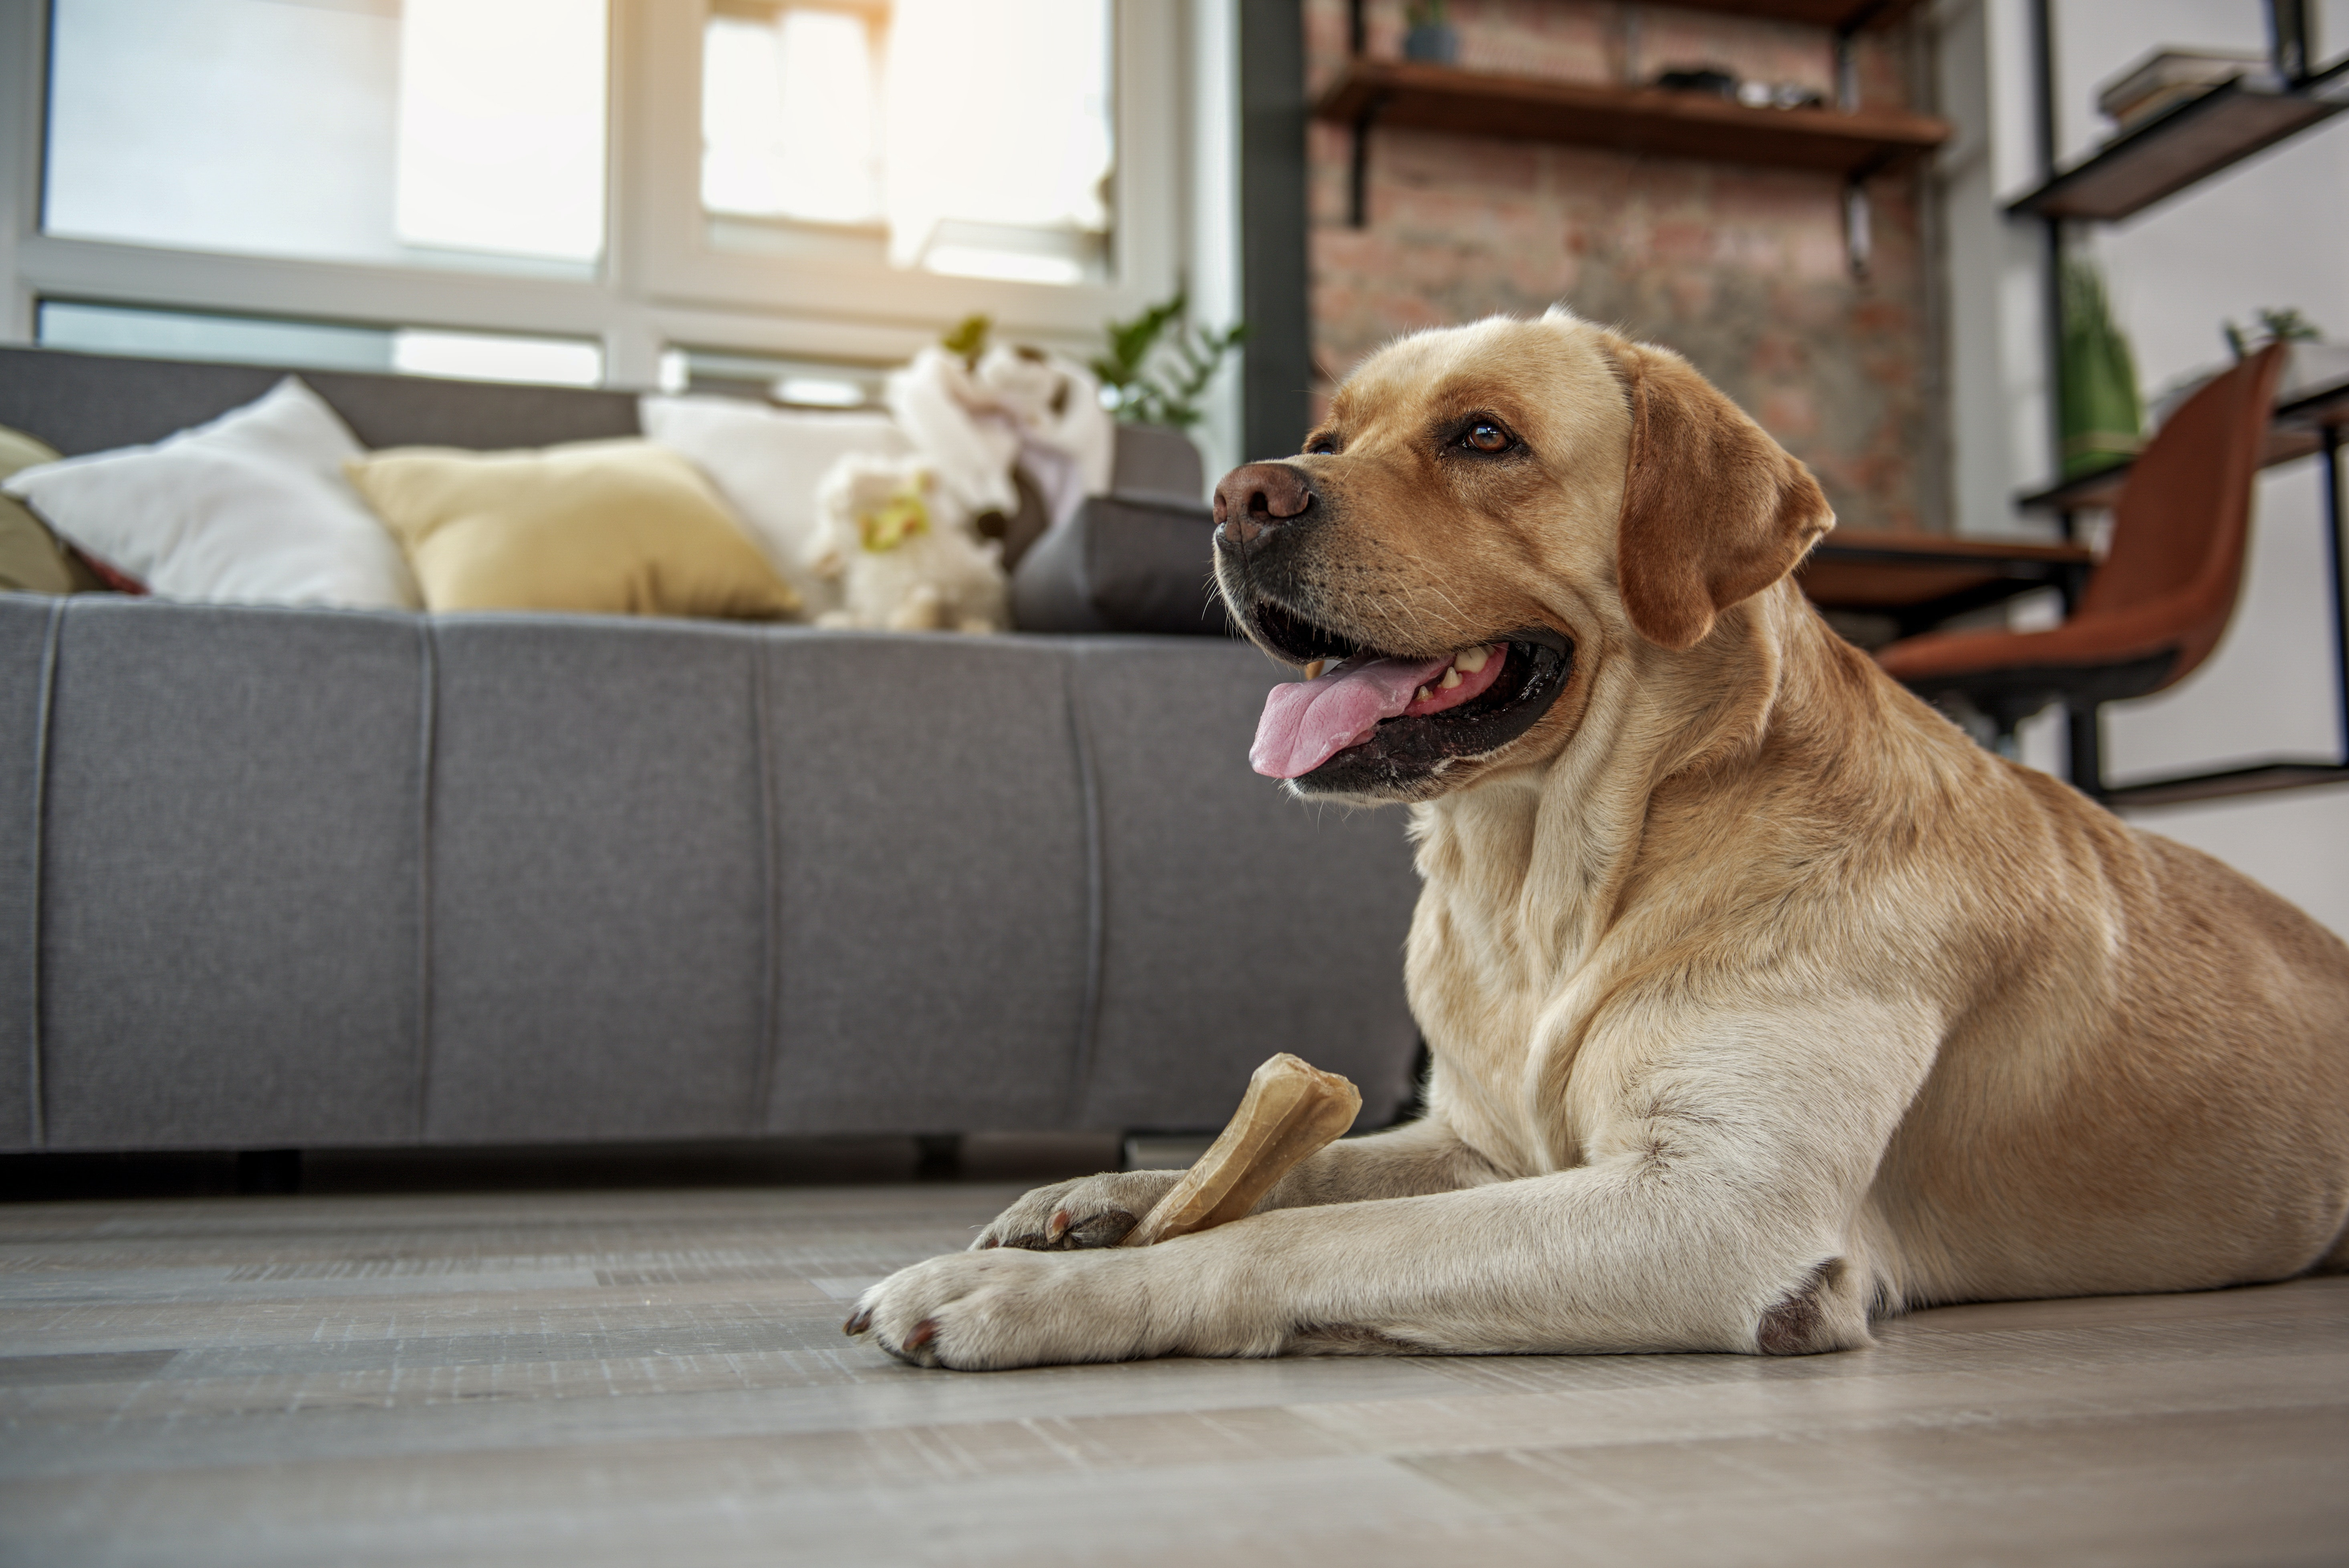 Abuse And Abandonment Why Pets Are At Risk During This Pandemic